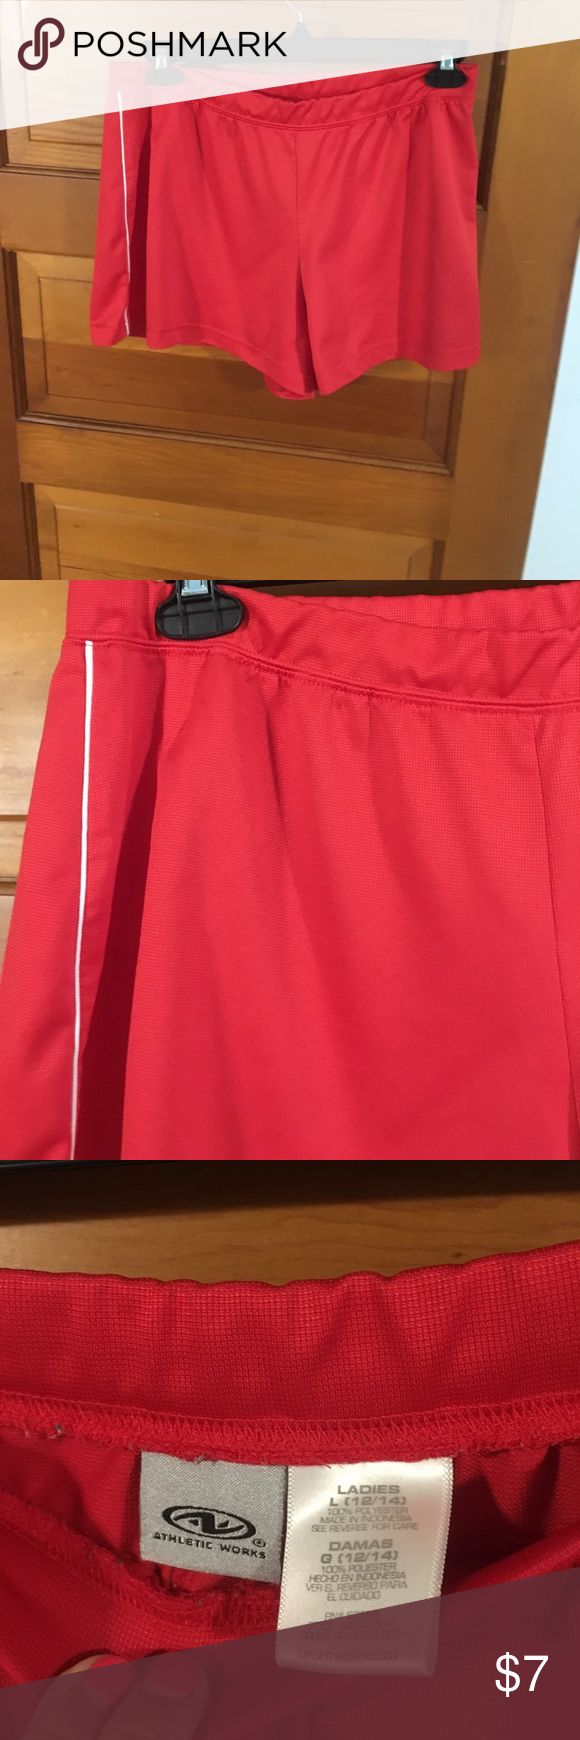 Athletic wear shorts Where them alone when you go jogging or put over a swimsuit for the beach,either way they're soft comfortable and in great shape. Athletic Works Shorts